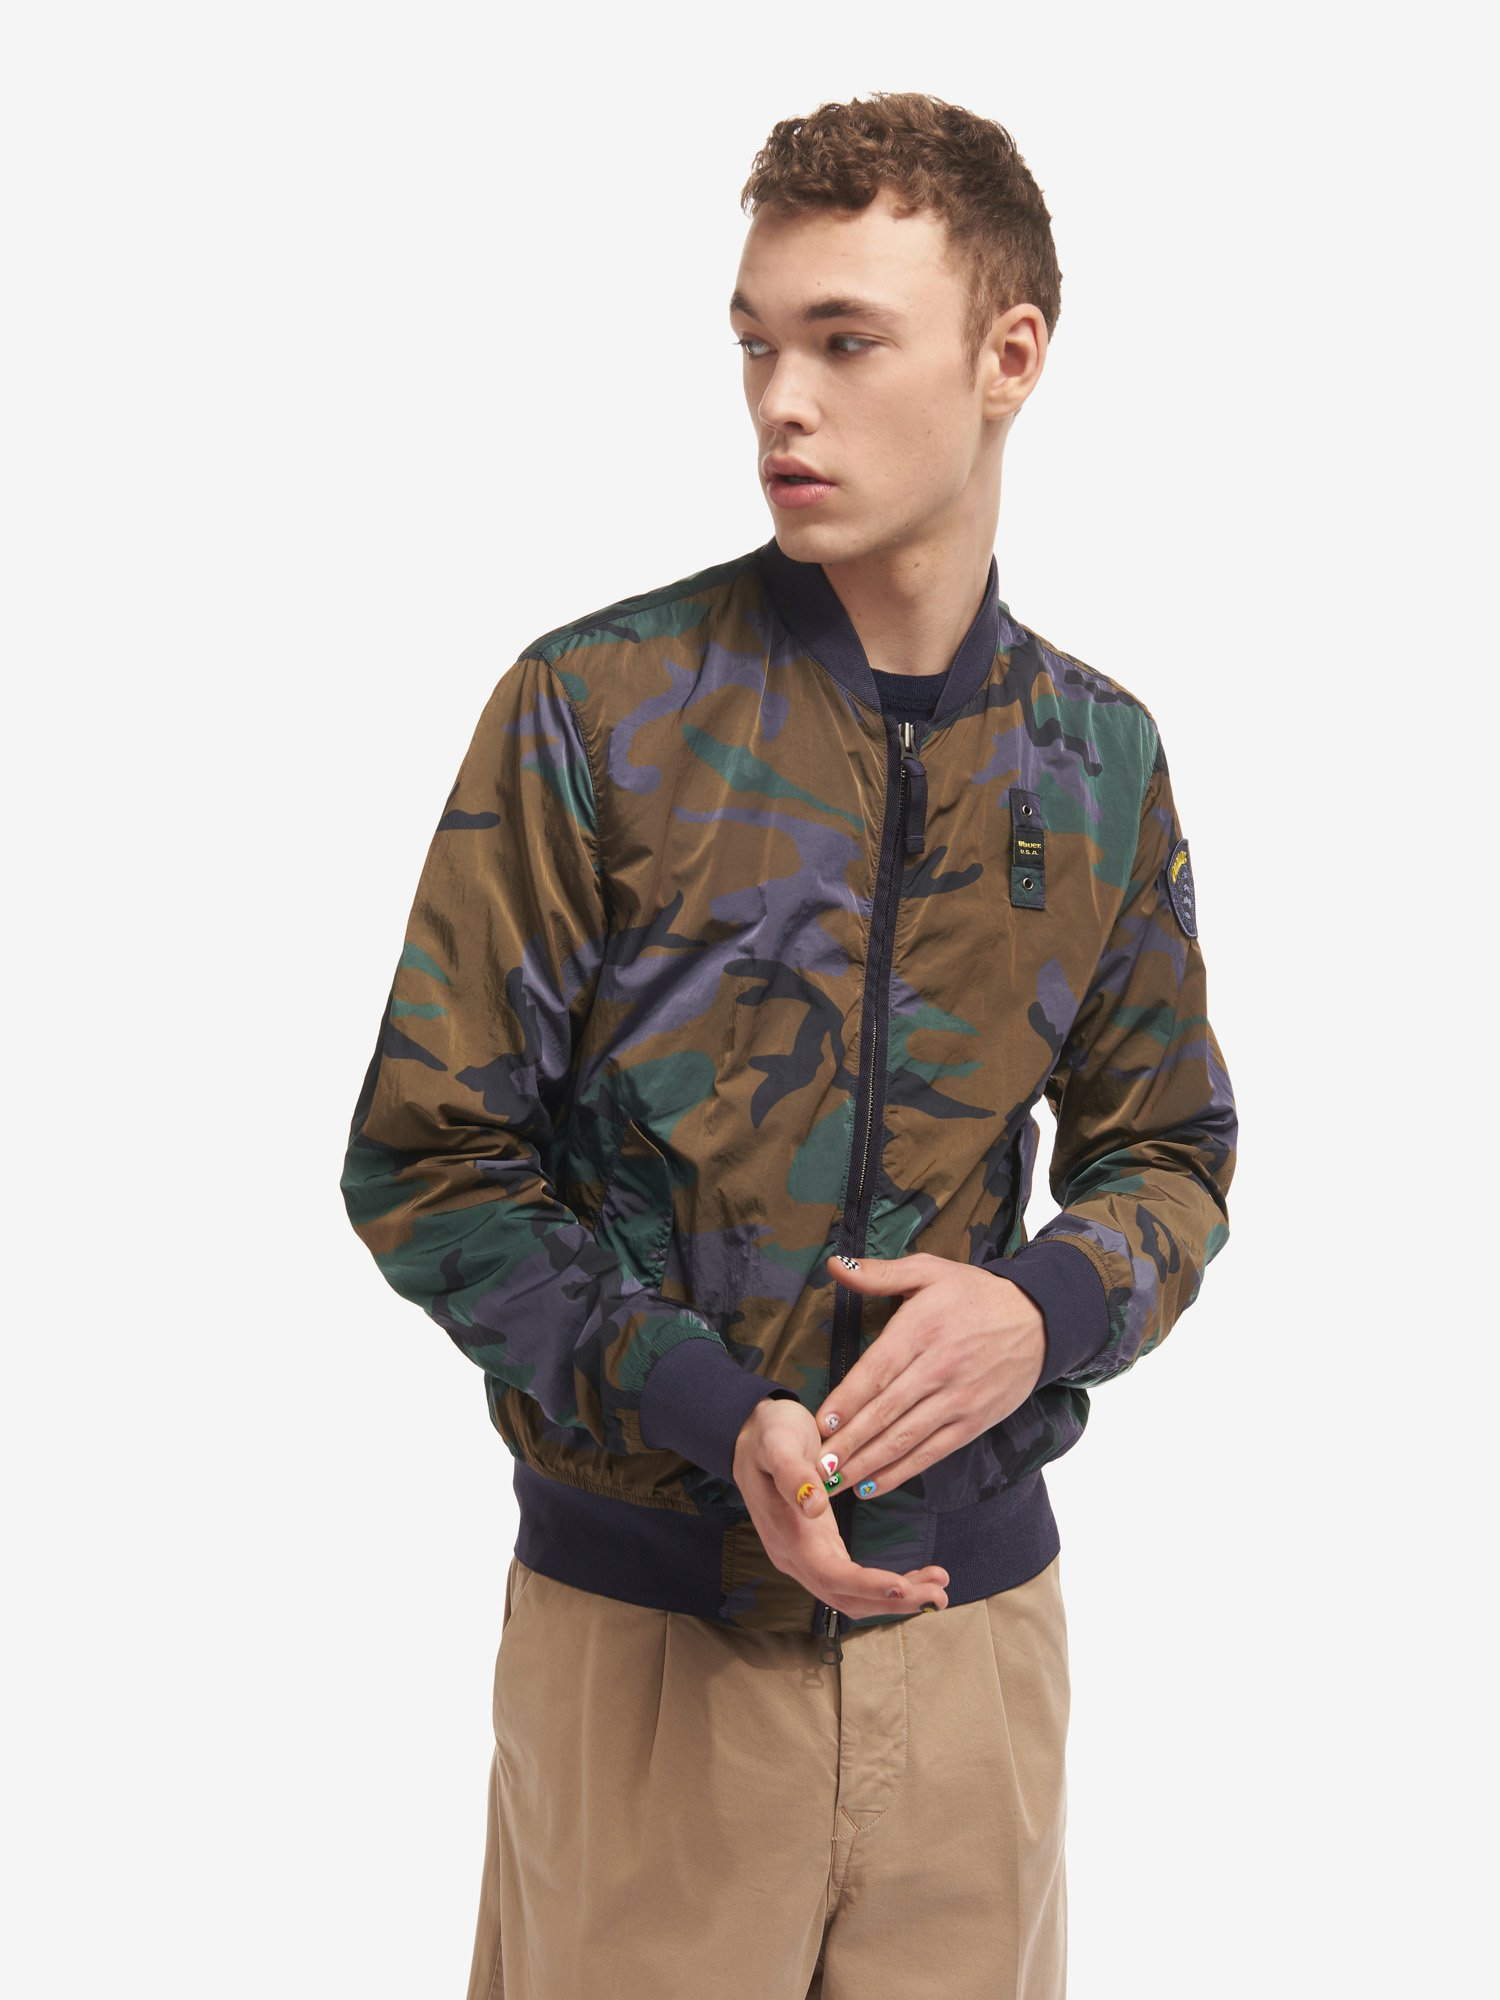 BOMBER CAMOUFLAGE TINTO IN CAPO RAY - Blauer